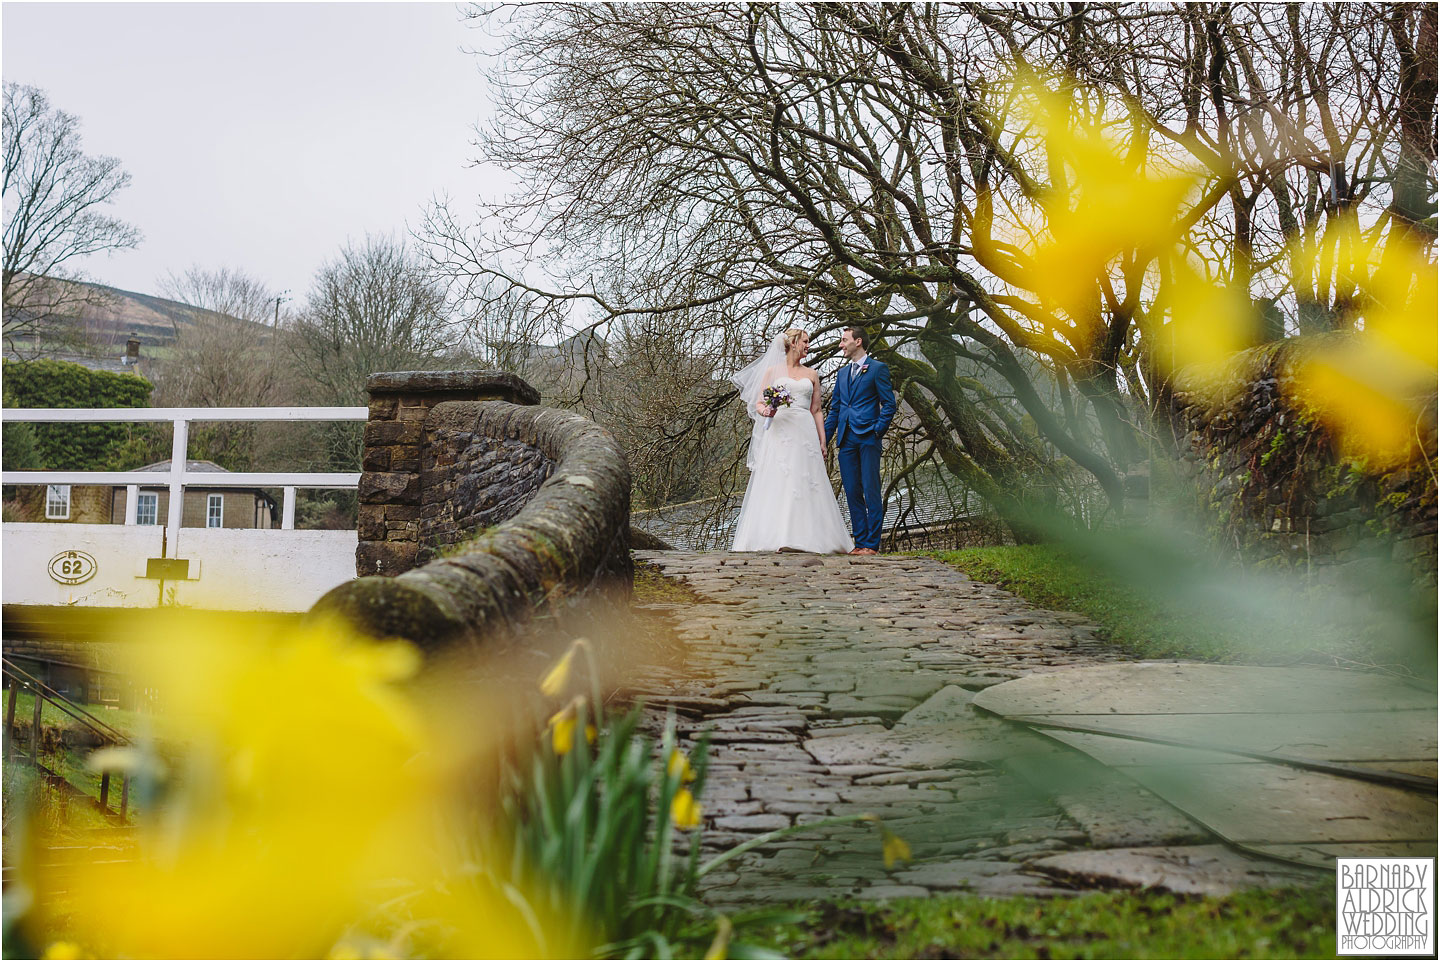 A spring wedding portrait at a wedding at Standedge Tunnel and Visitor Centre in Marsden